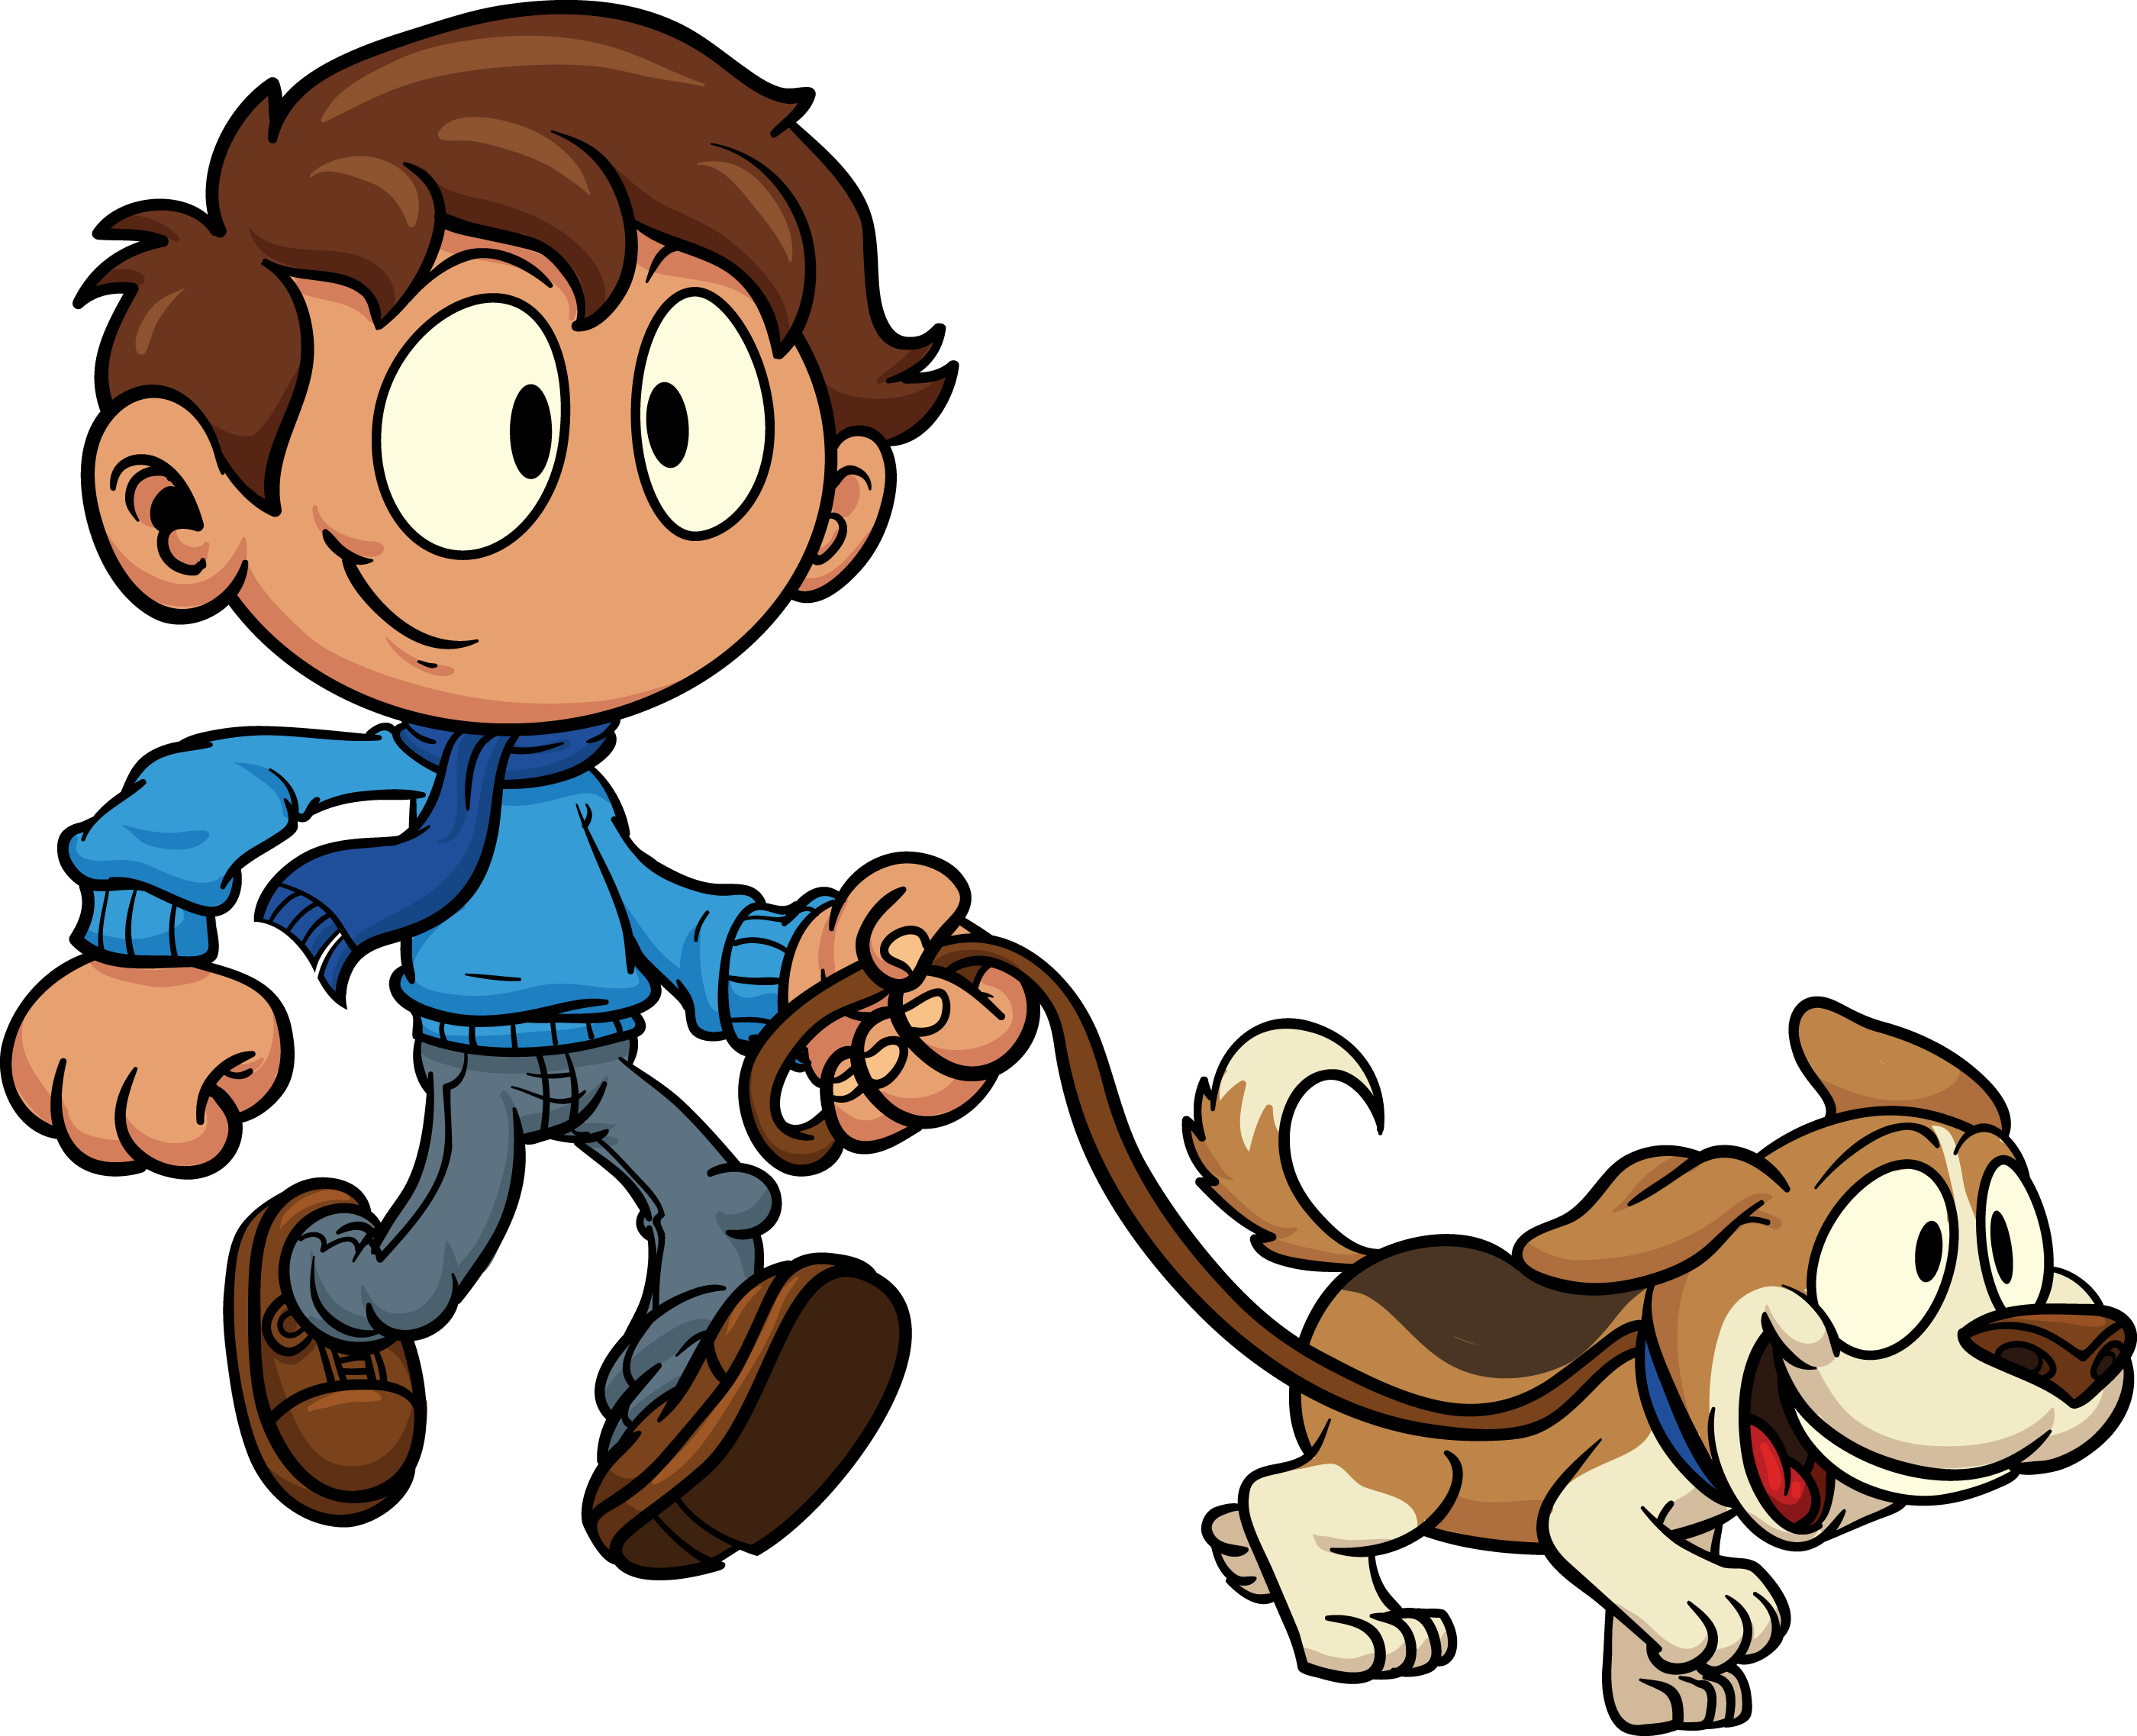 Taking a dog out clipart graphic freeuse stock First Steps to Trading - StocksToTrade.com graphic freeuse stock